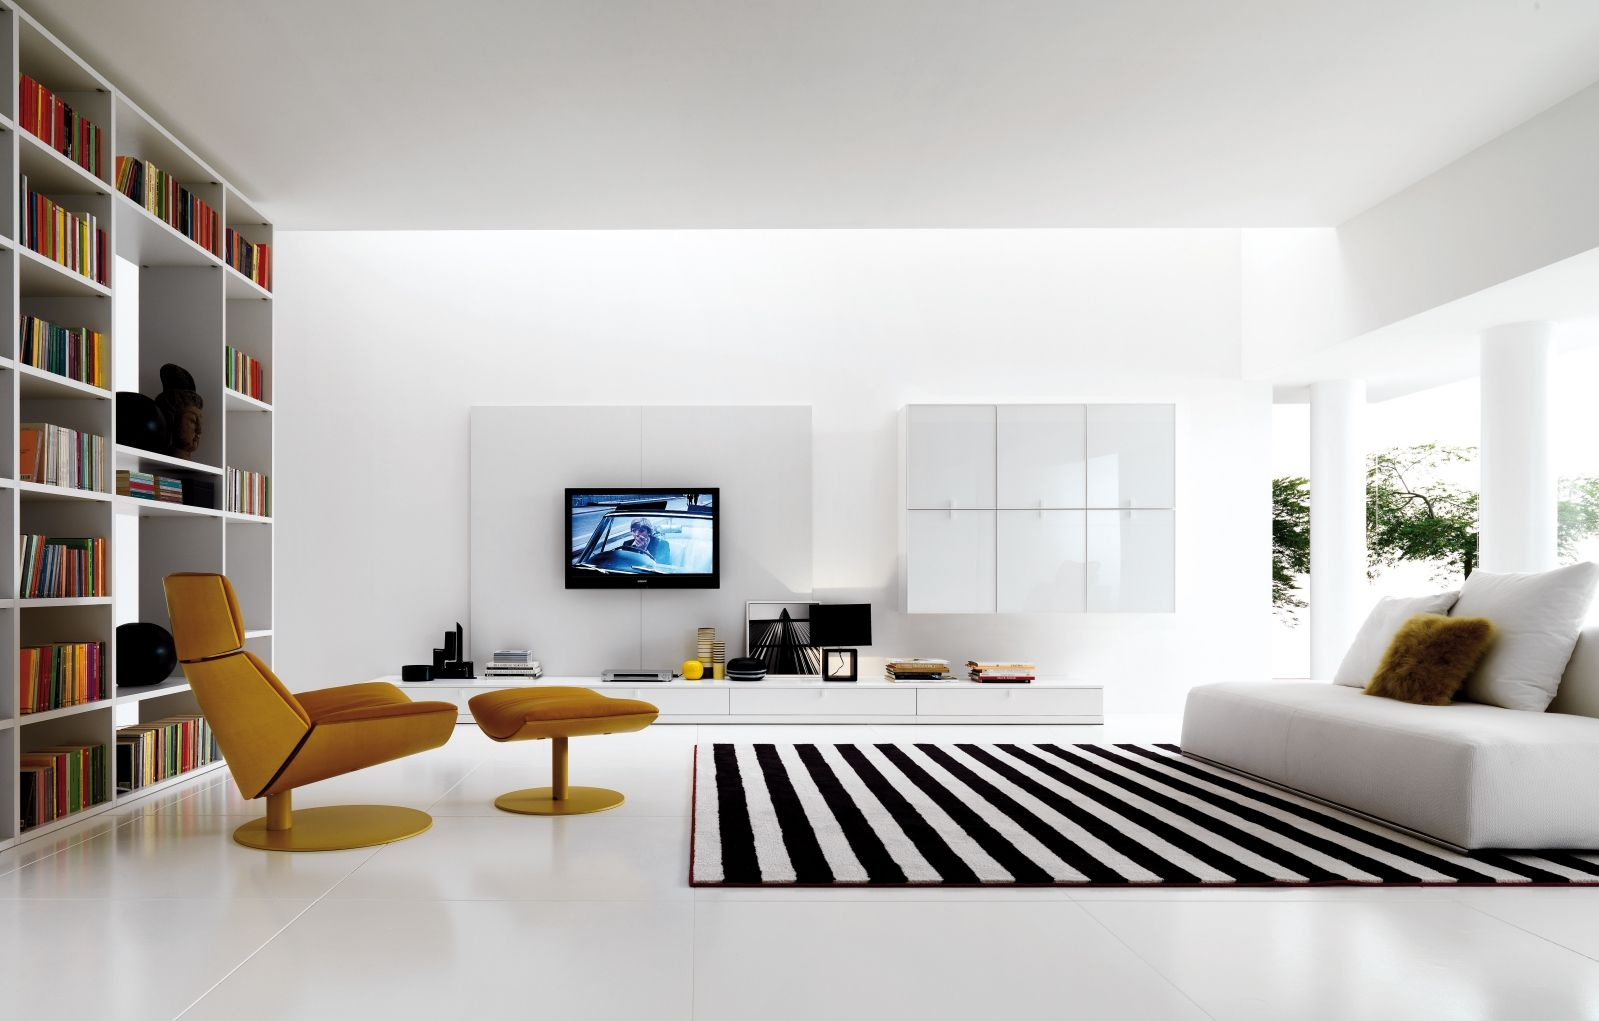 Modern Living Room Decorating Ideas And White Living Room Wall Color Design  With Minimalist Rug Living Room Design And Spacious Interior Living Room  ModelsLiving Room Furniture Ideas for Any Style of D cor   Living Room  . Modern Living Standard Furniture Victoria Bc. Home Design Ideas